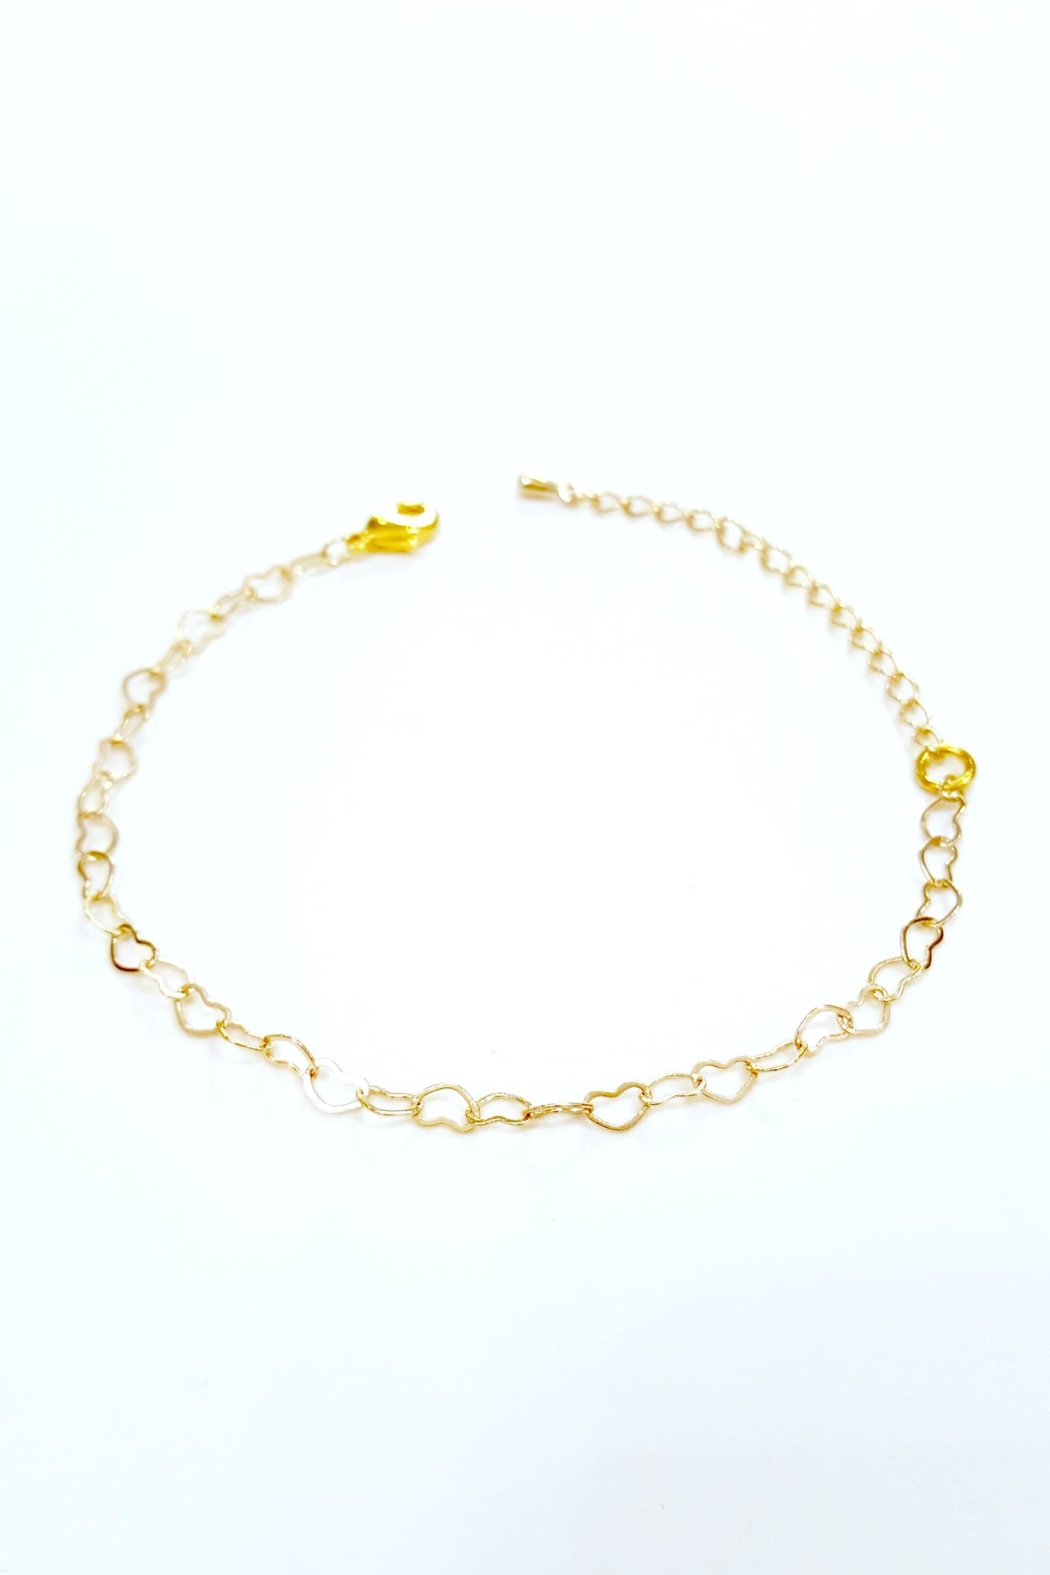 Simply Chic Heart Chain Bracelet - Main Image